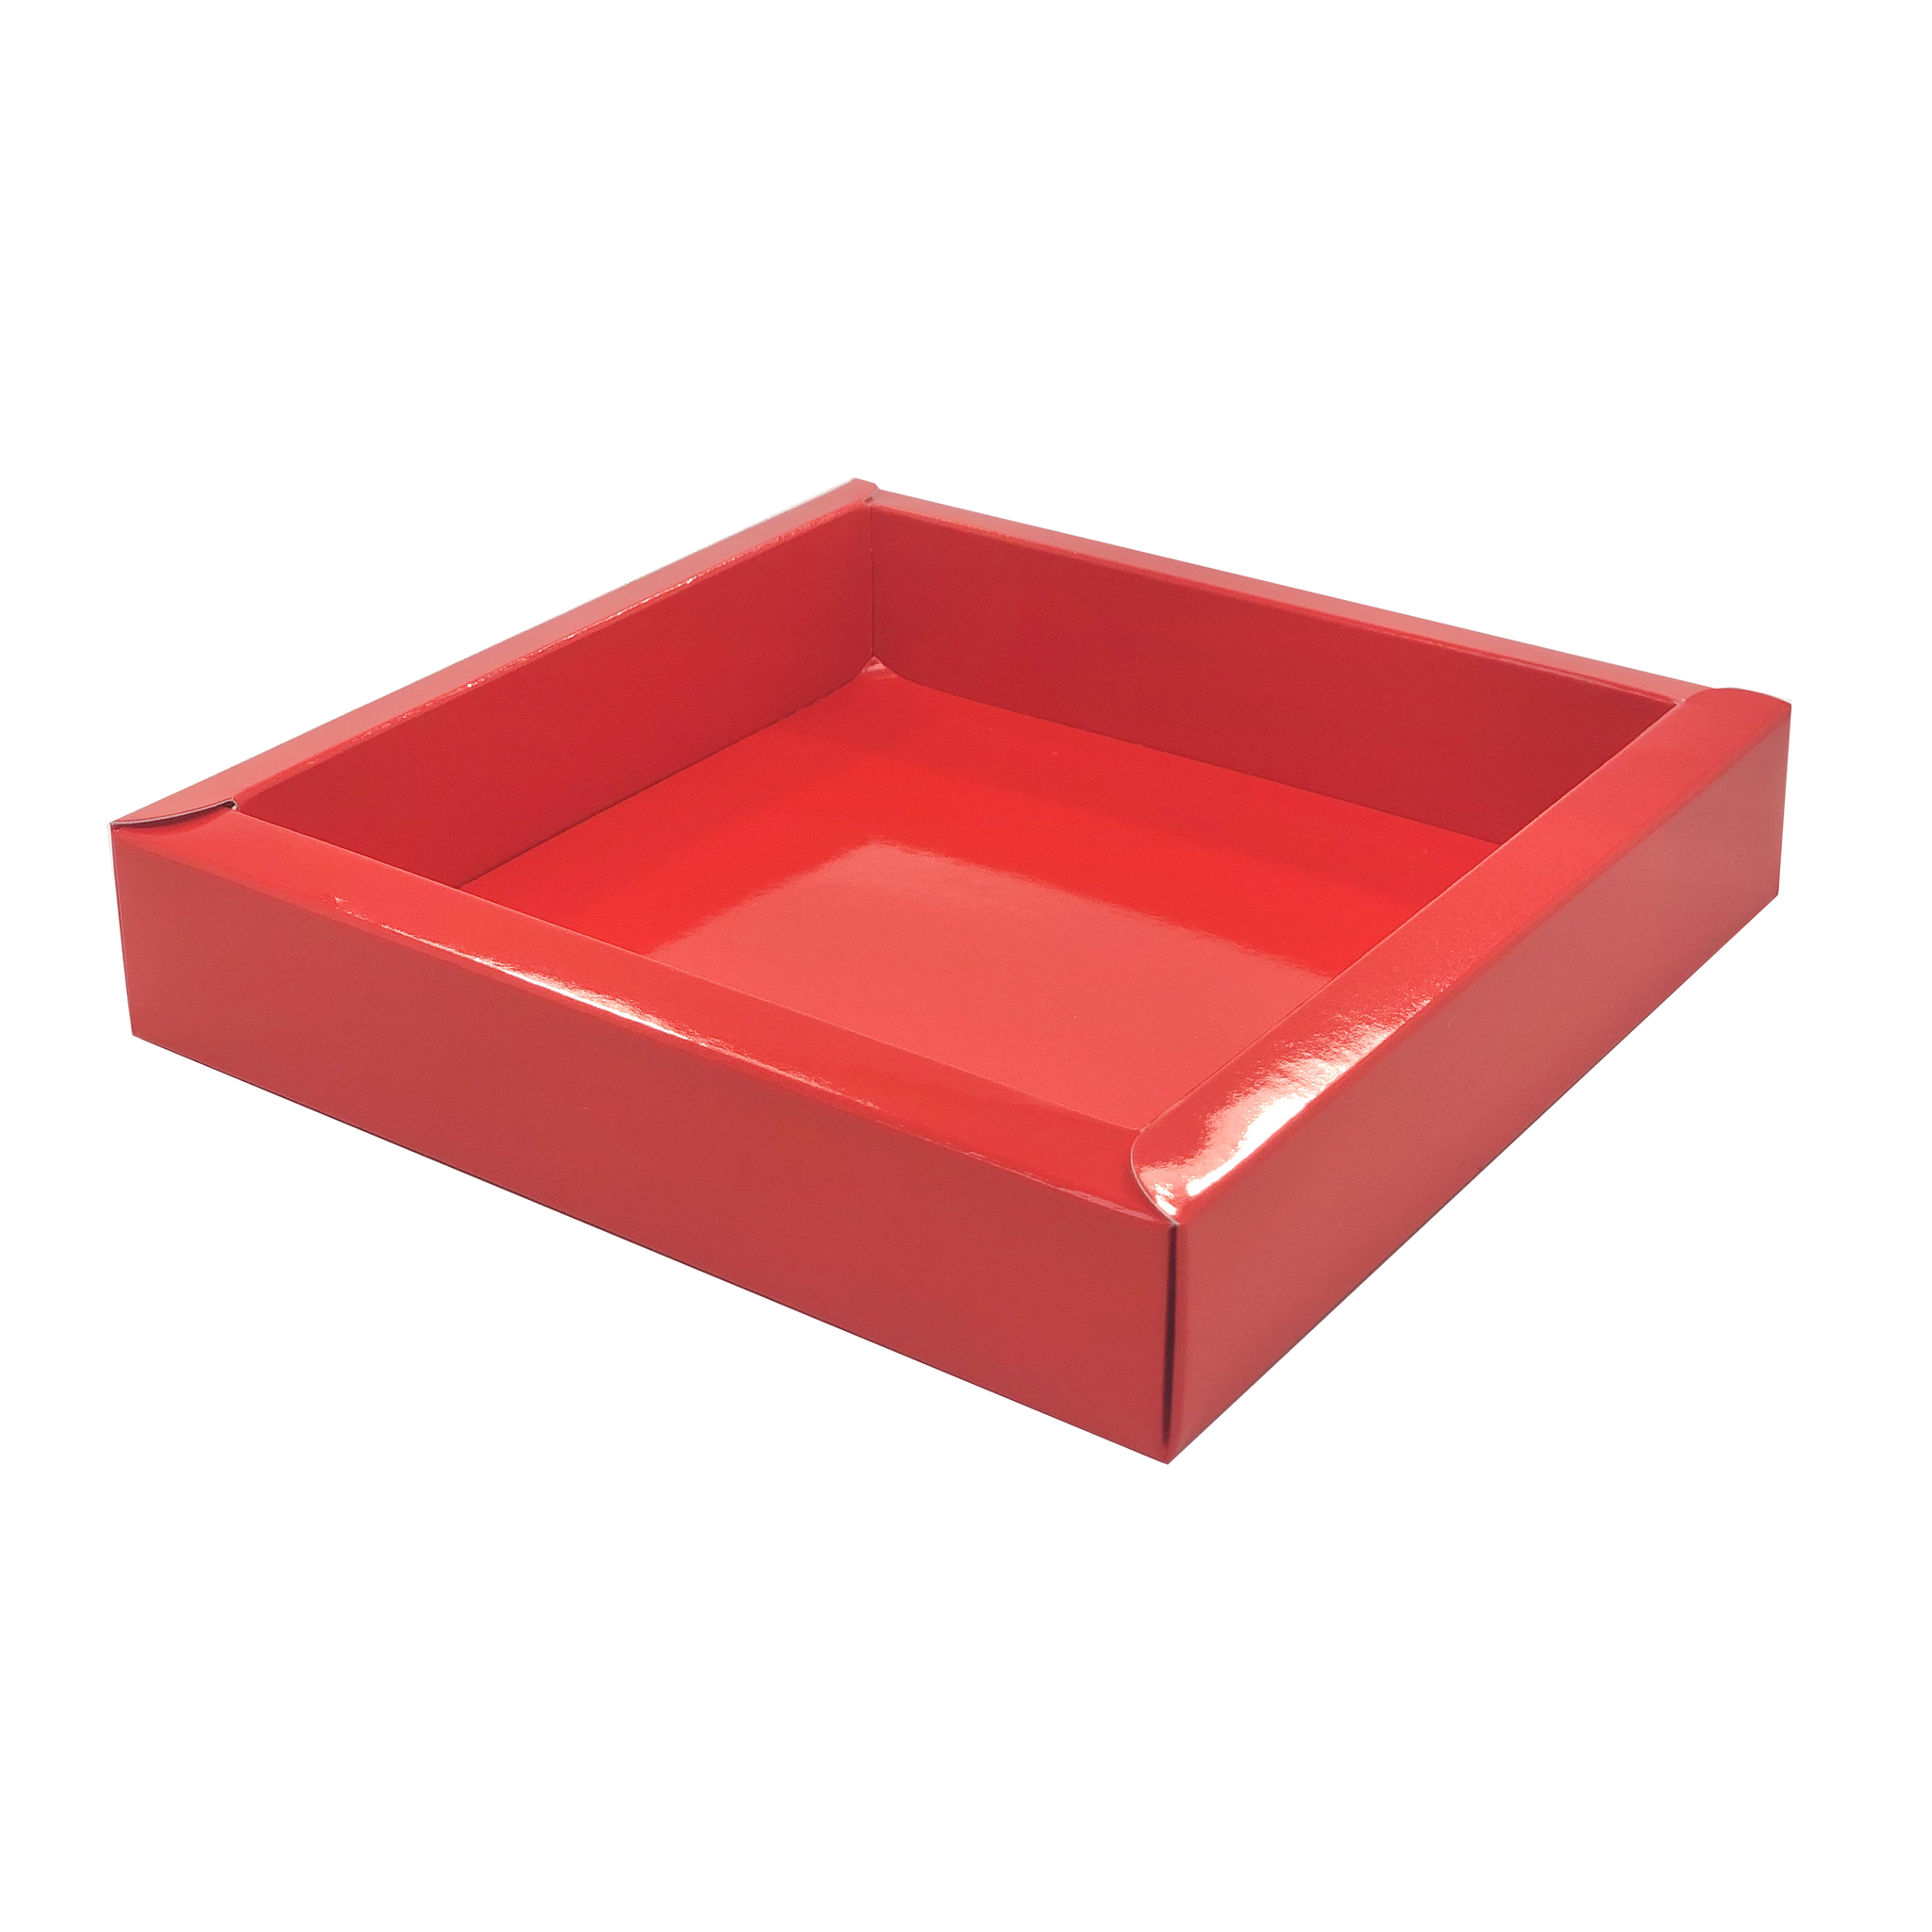 Square box red with transparant lid - 115*115*25mm - 42 pieces